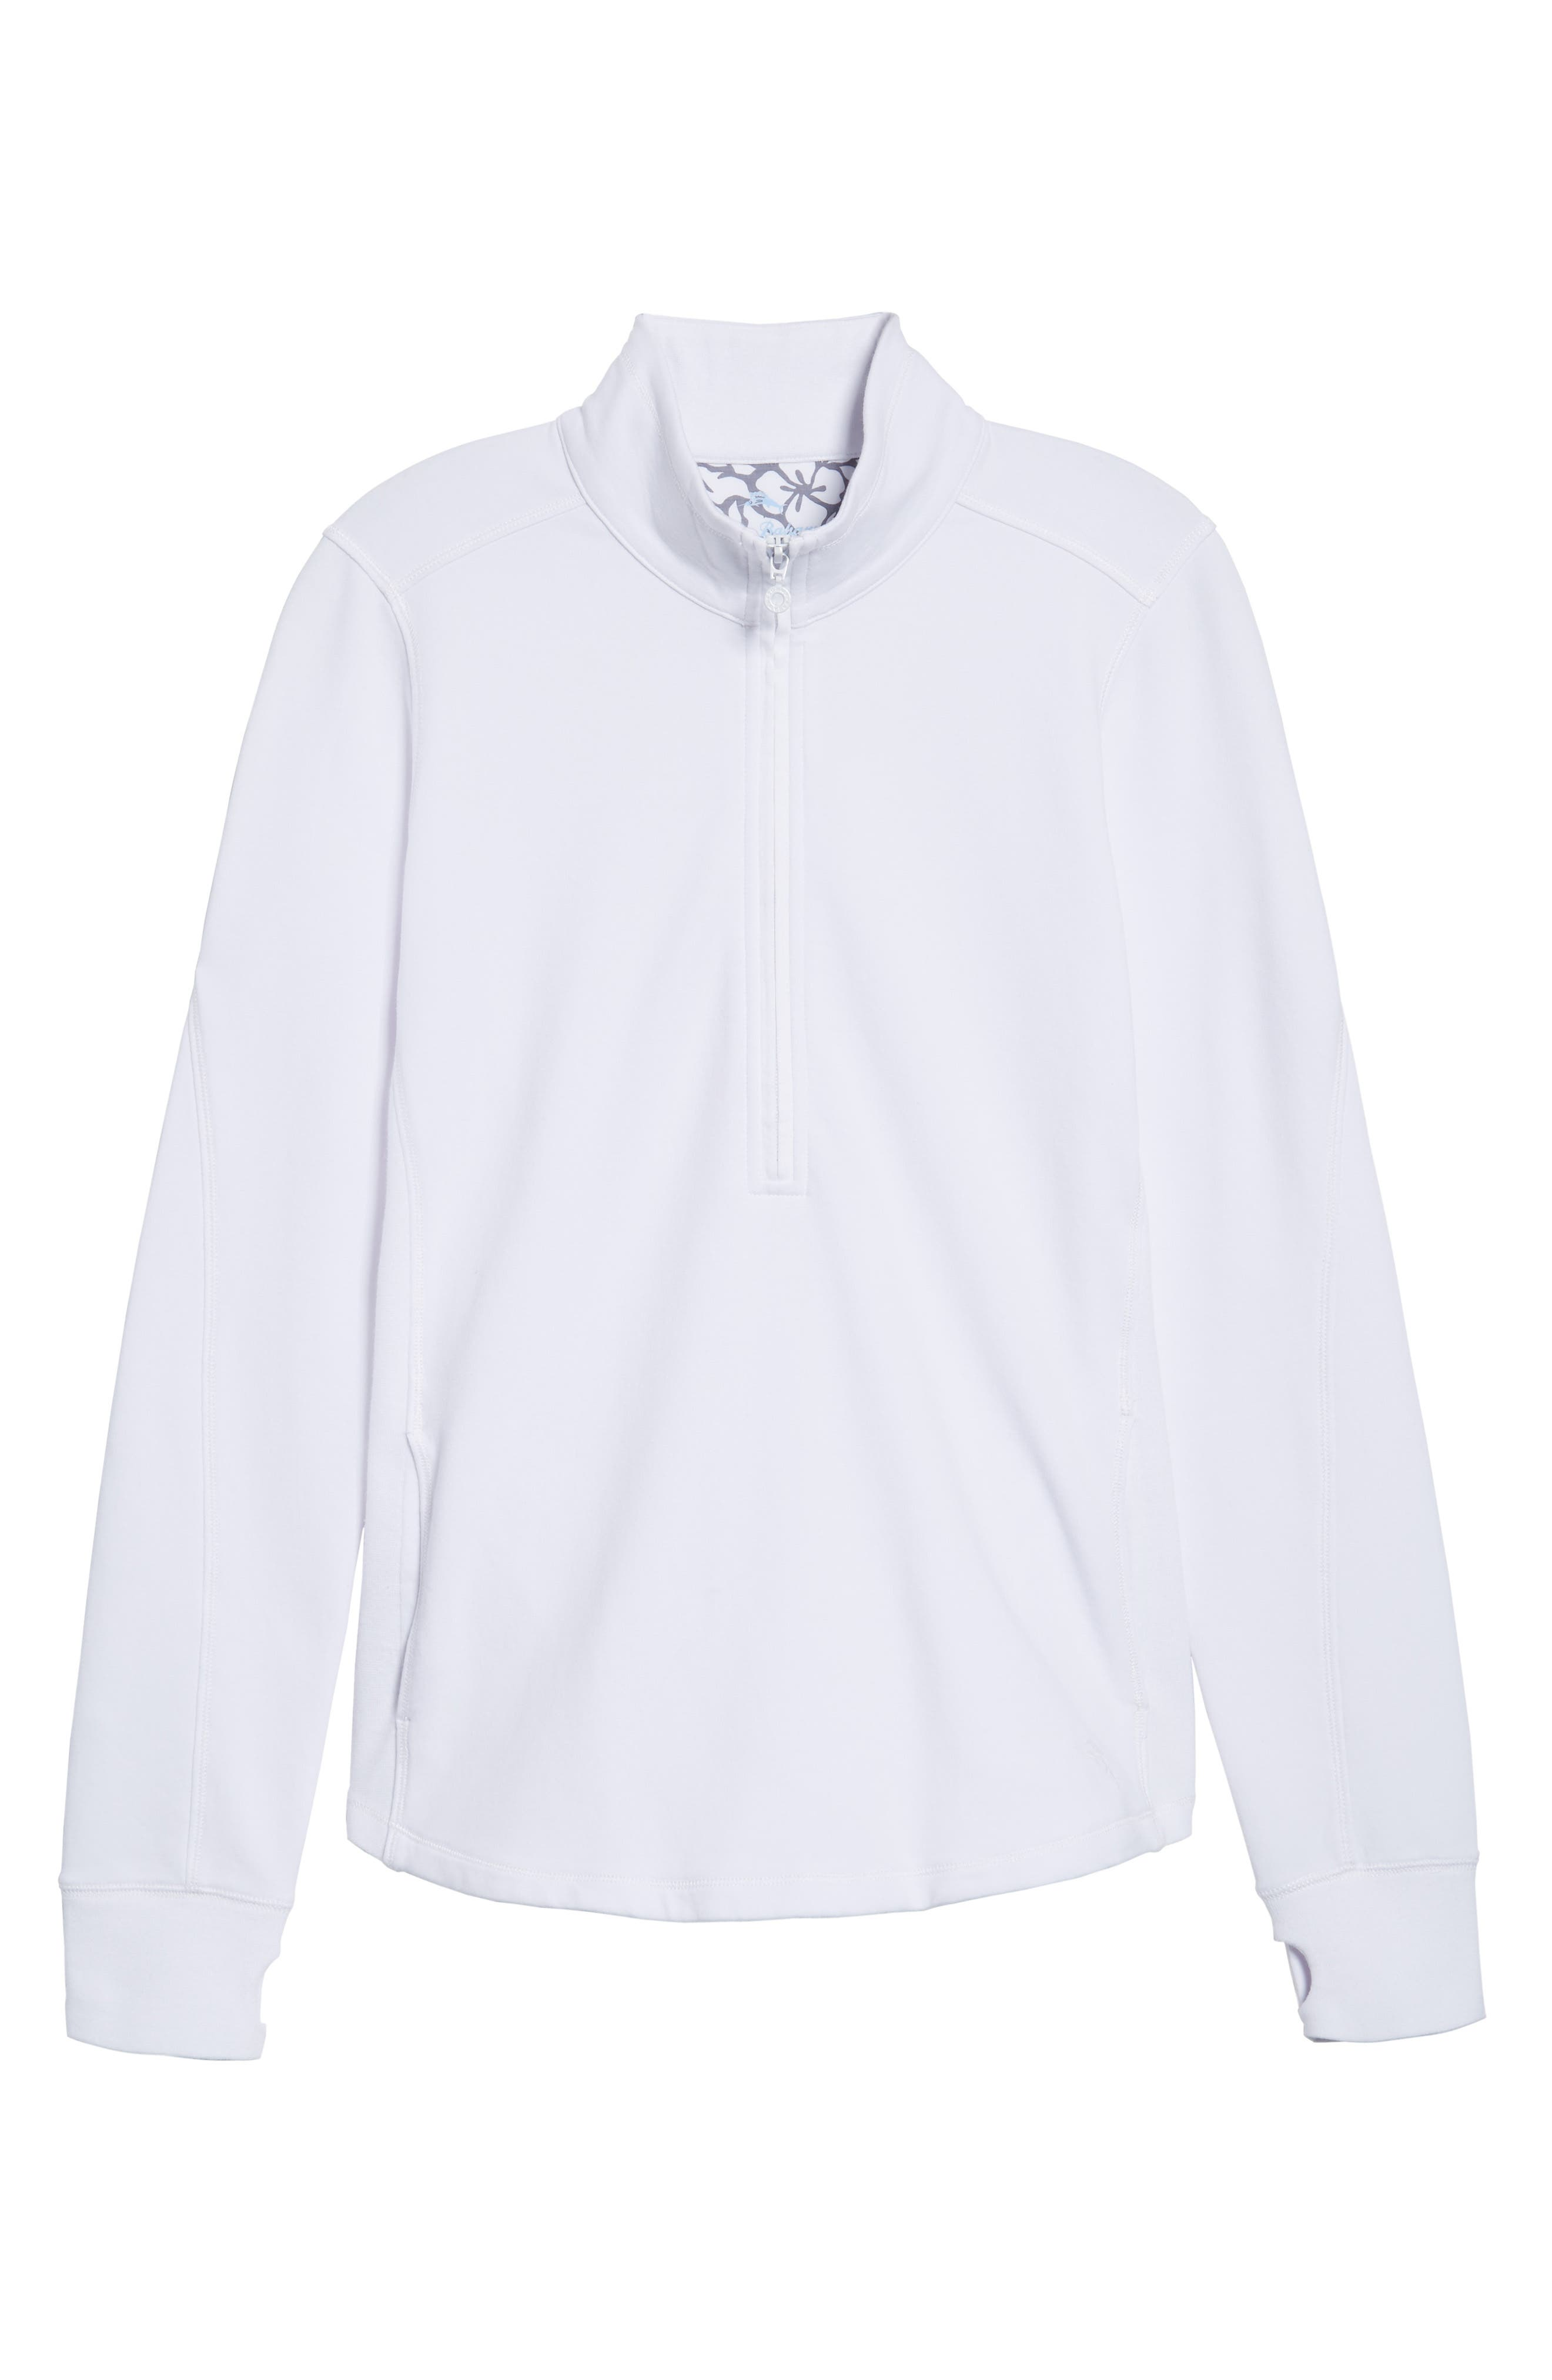 Jen and Terry Half Zip Top,                             Alternate thumbnail 6, color,                             WHITE